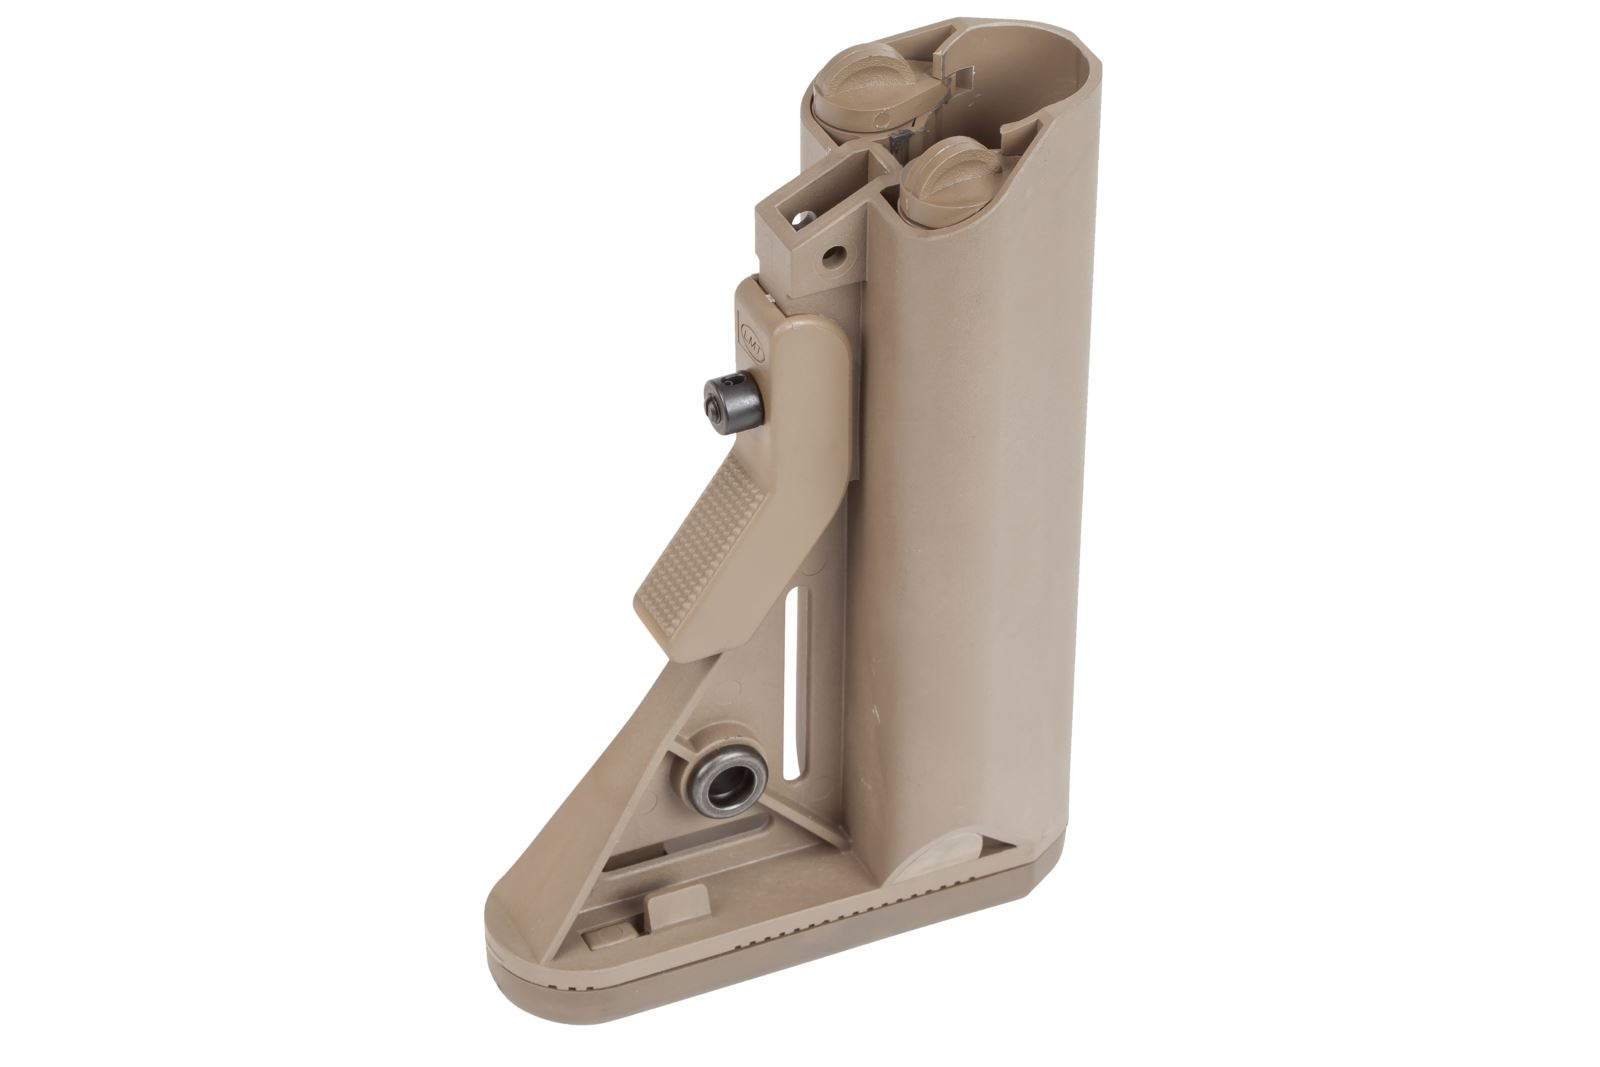 LMT Lewis Machine SOPMOD BUTTSTOCK-Tan